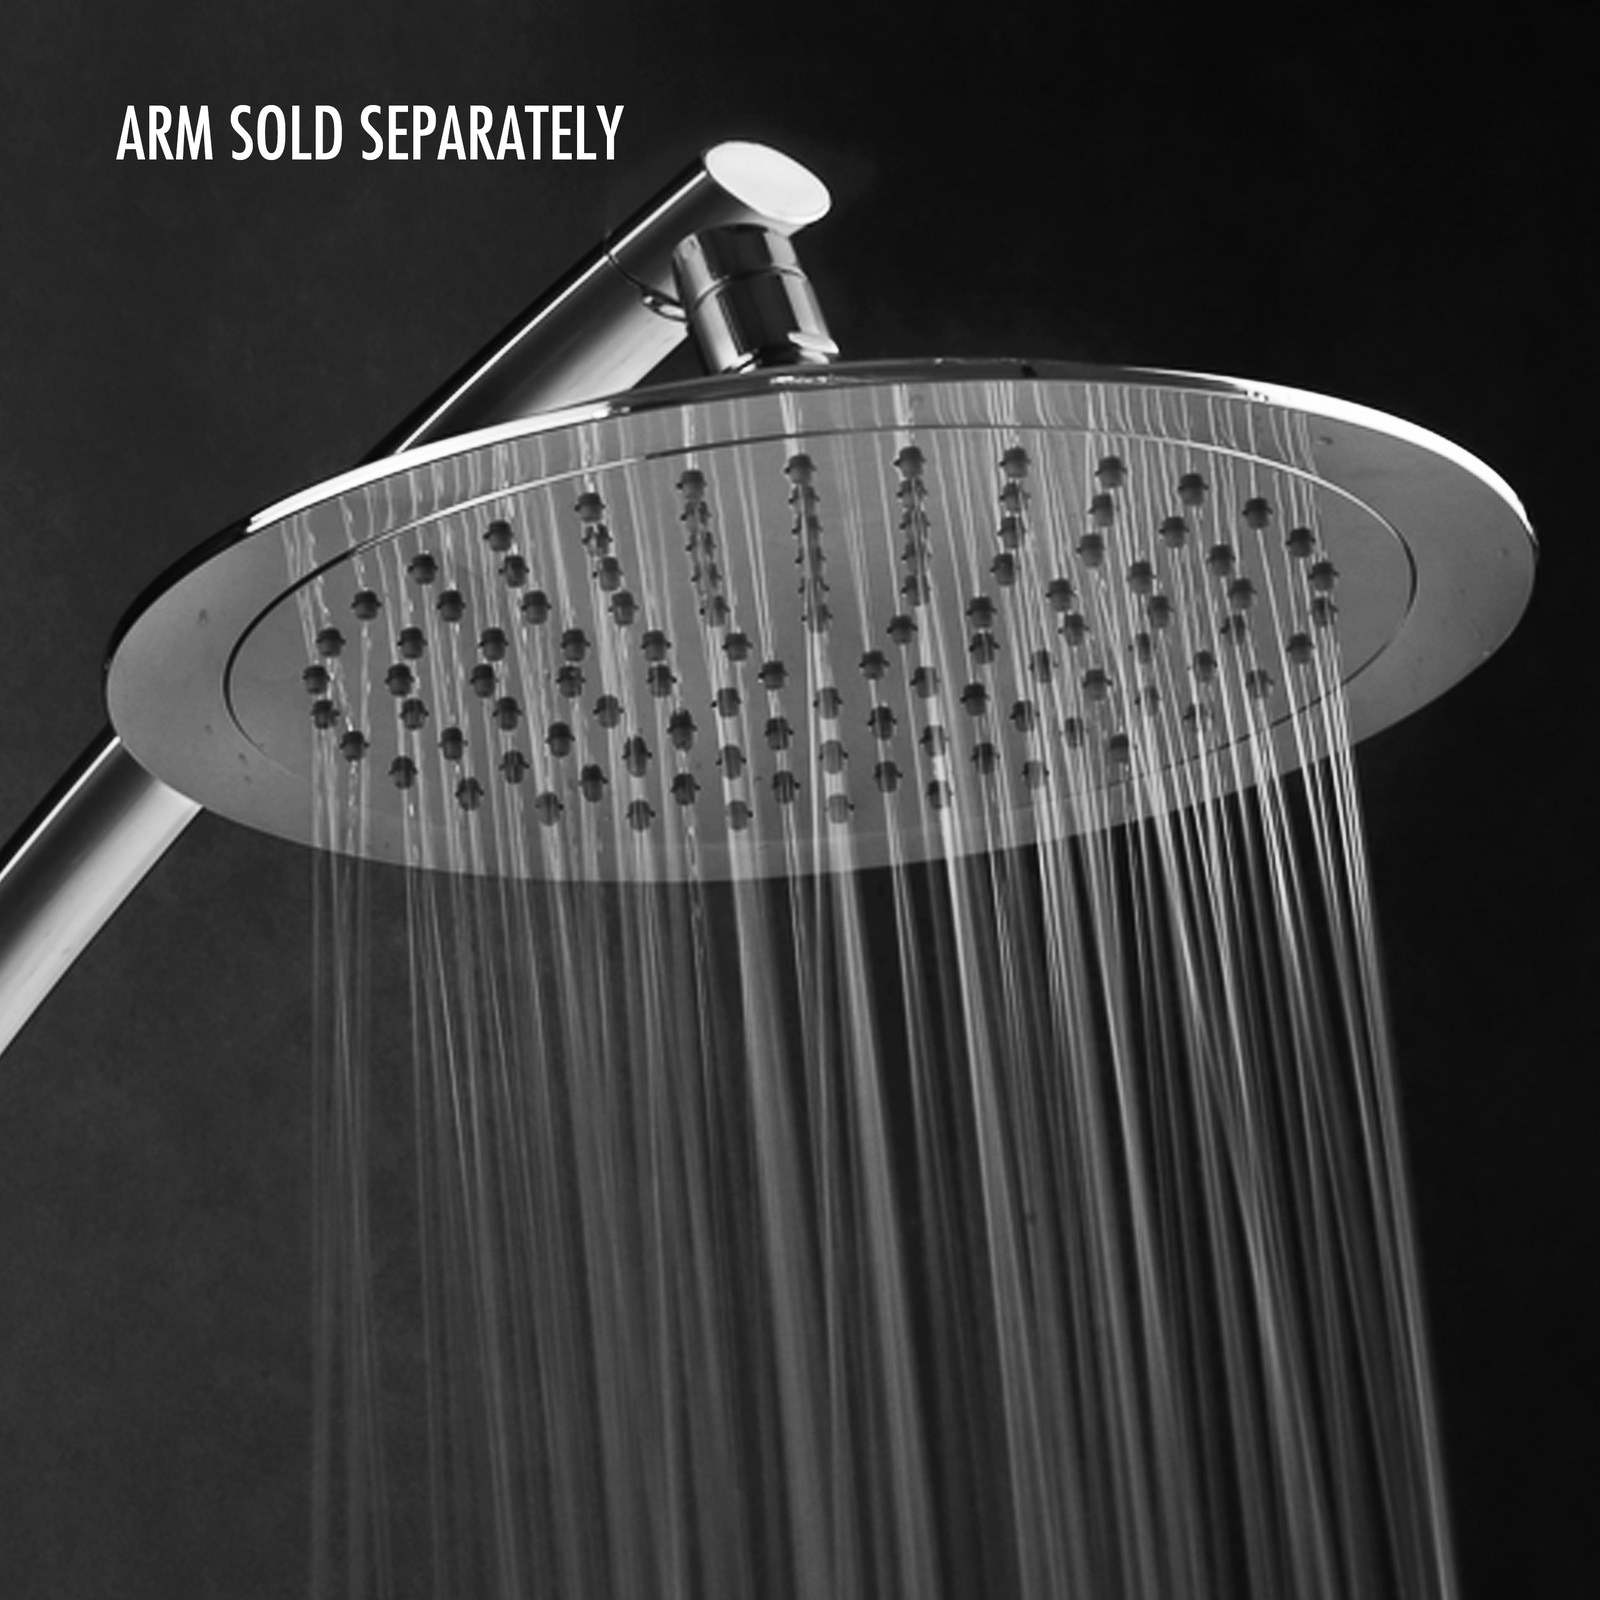 Primary image for Premium Stainless Steel 10-inch Square Rainfall Shower Head (without shower arm)